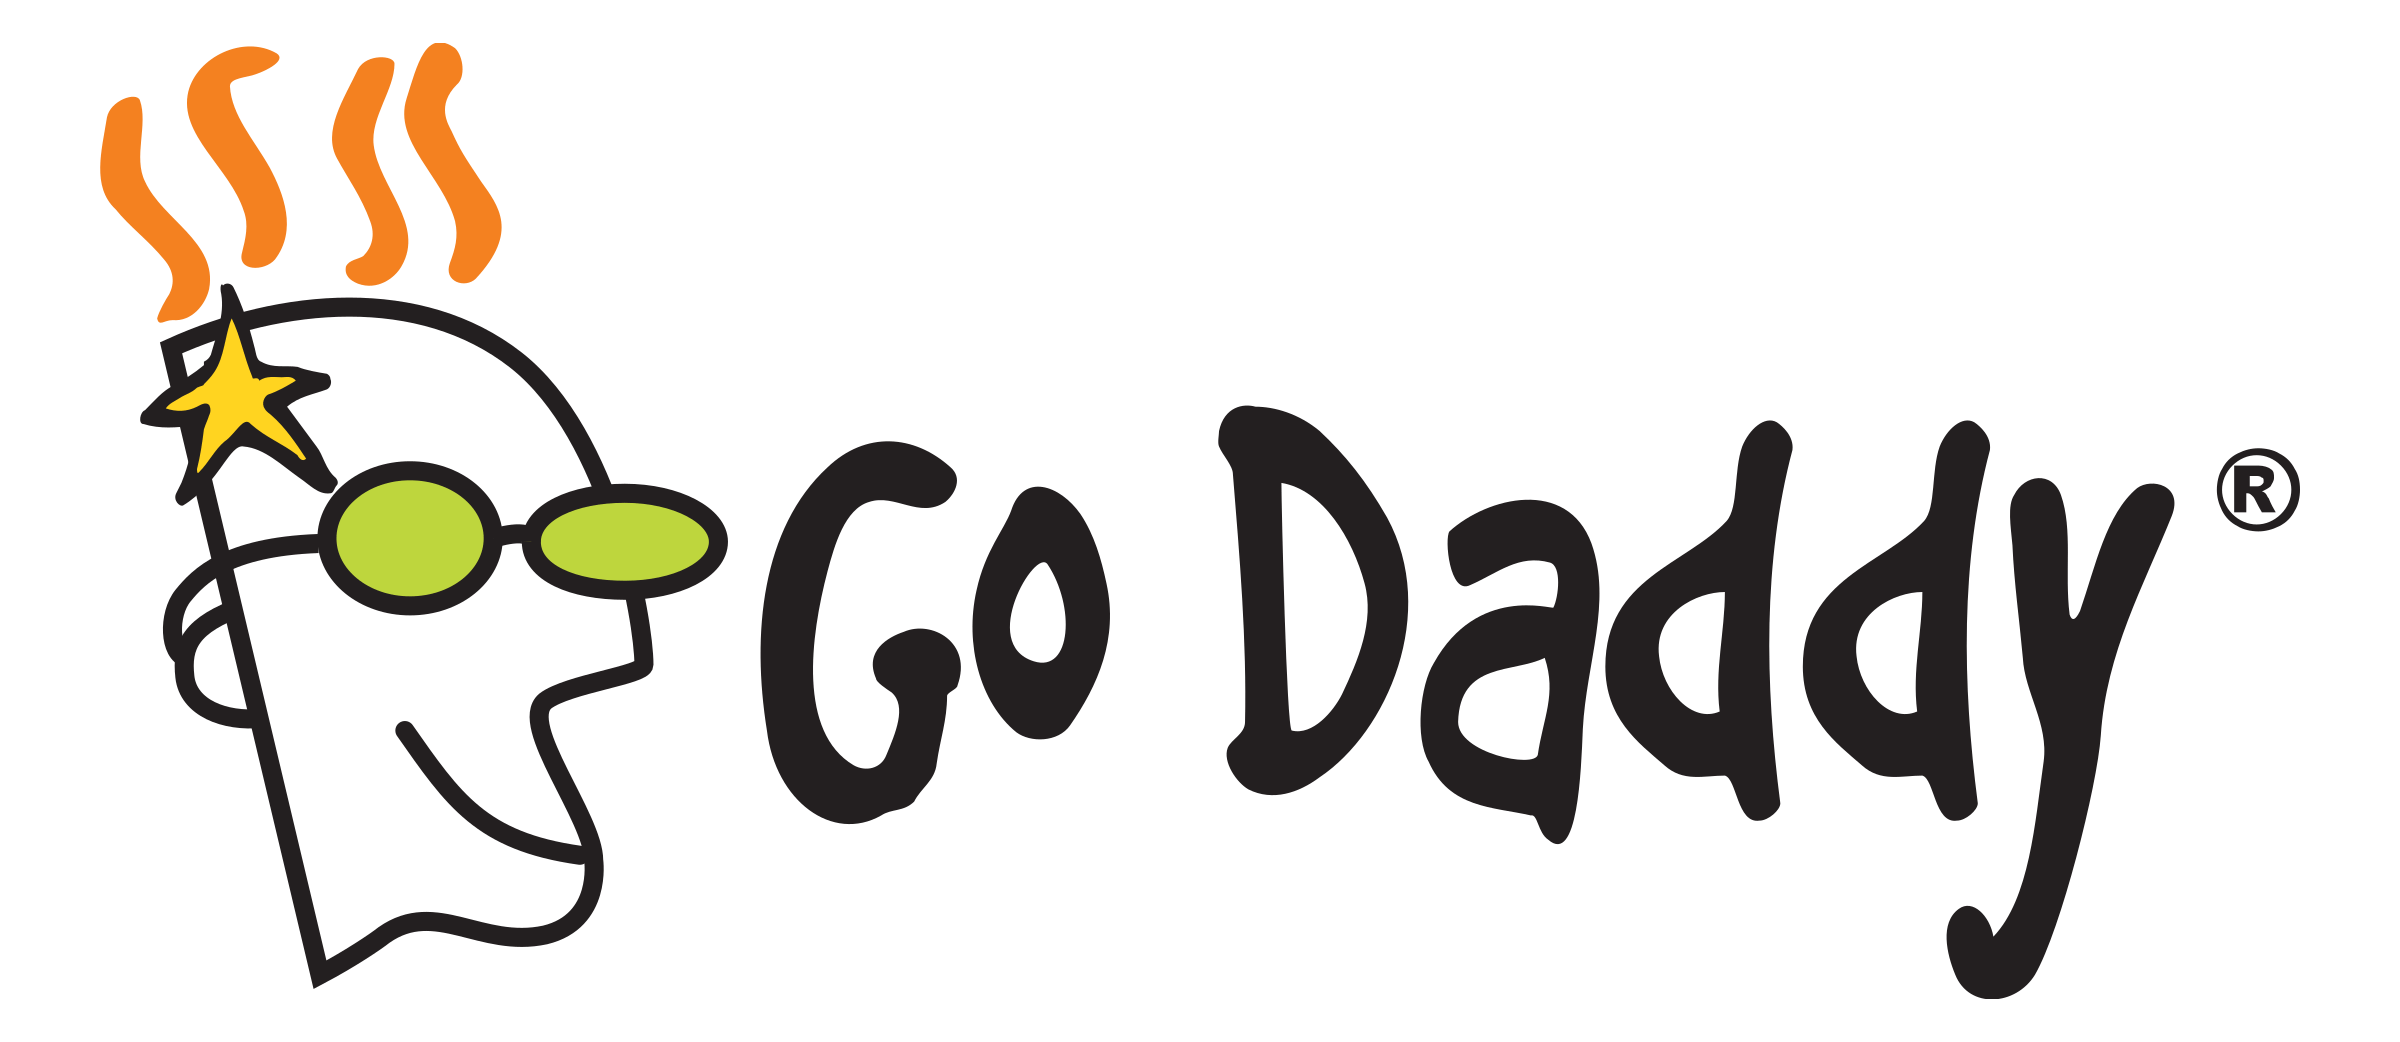 godaddy-logo-transparent